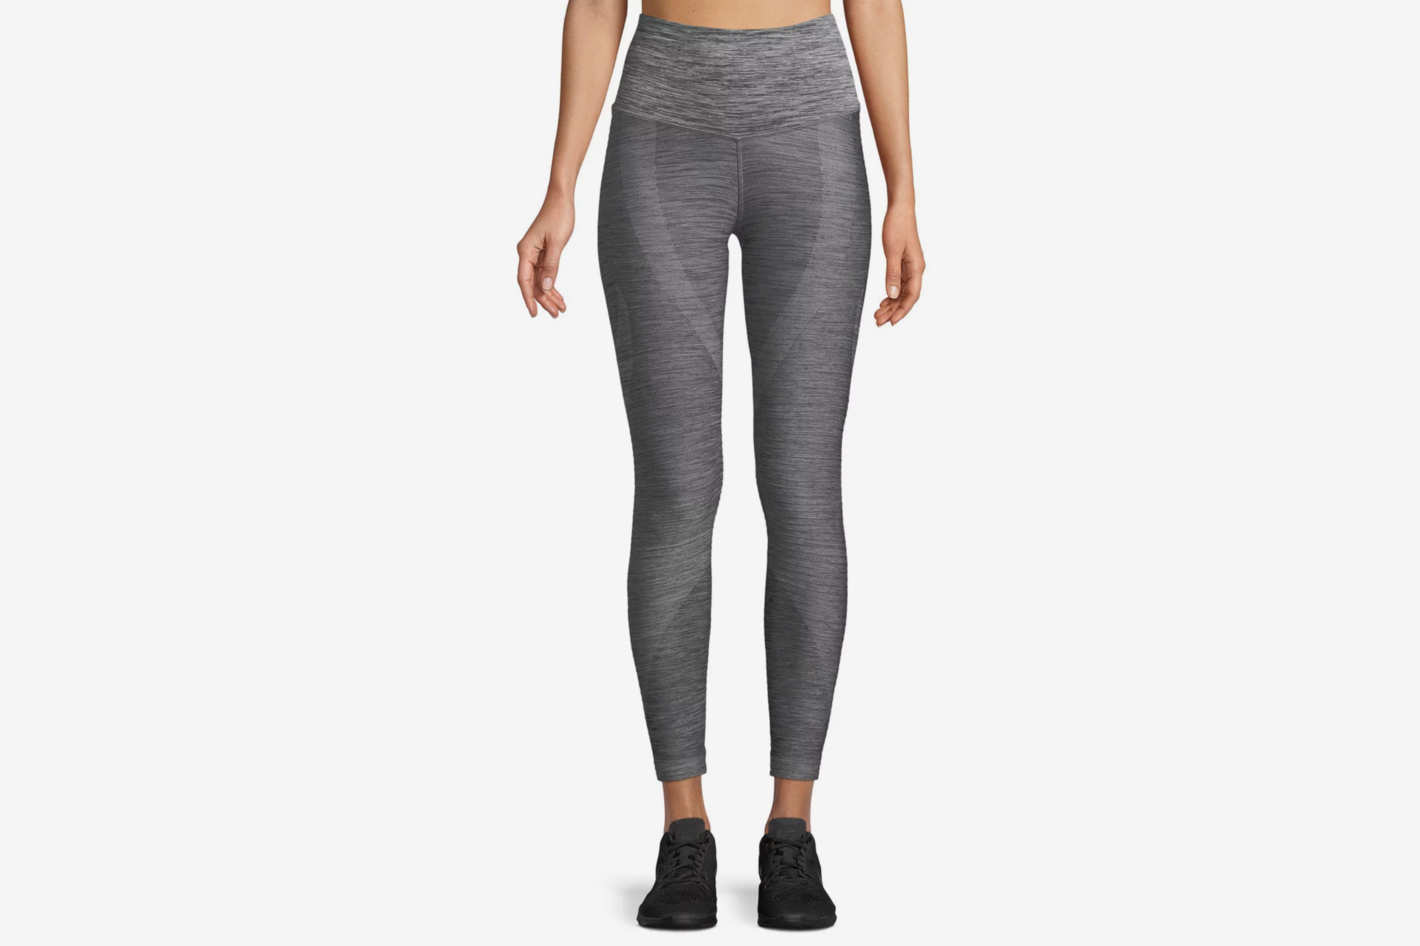 Nike Power Sculpt High-Rise Performance Training Tights